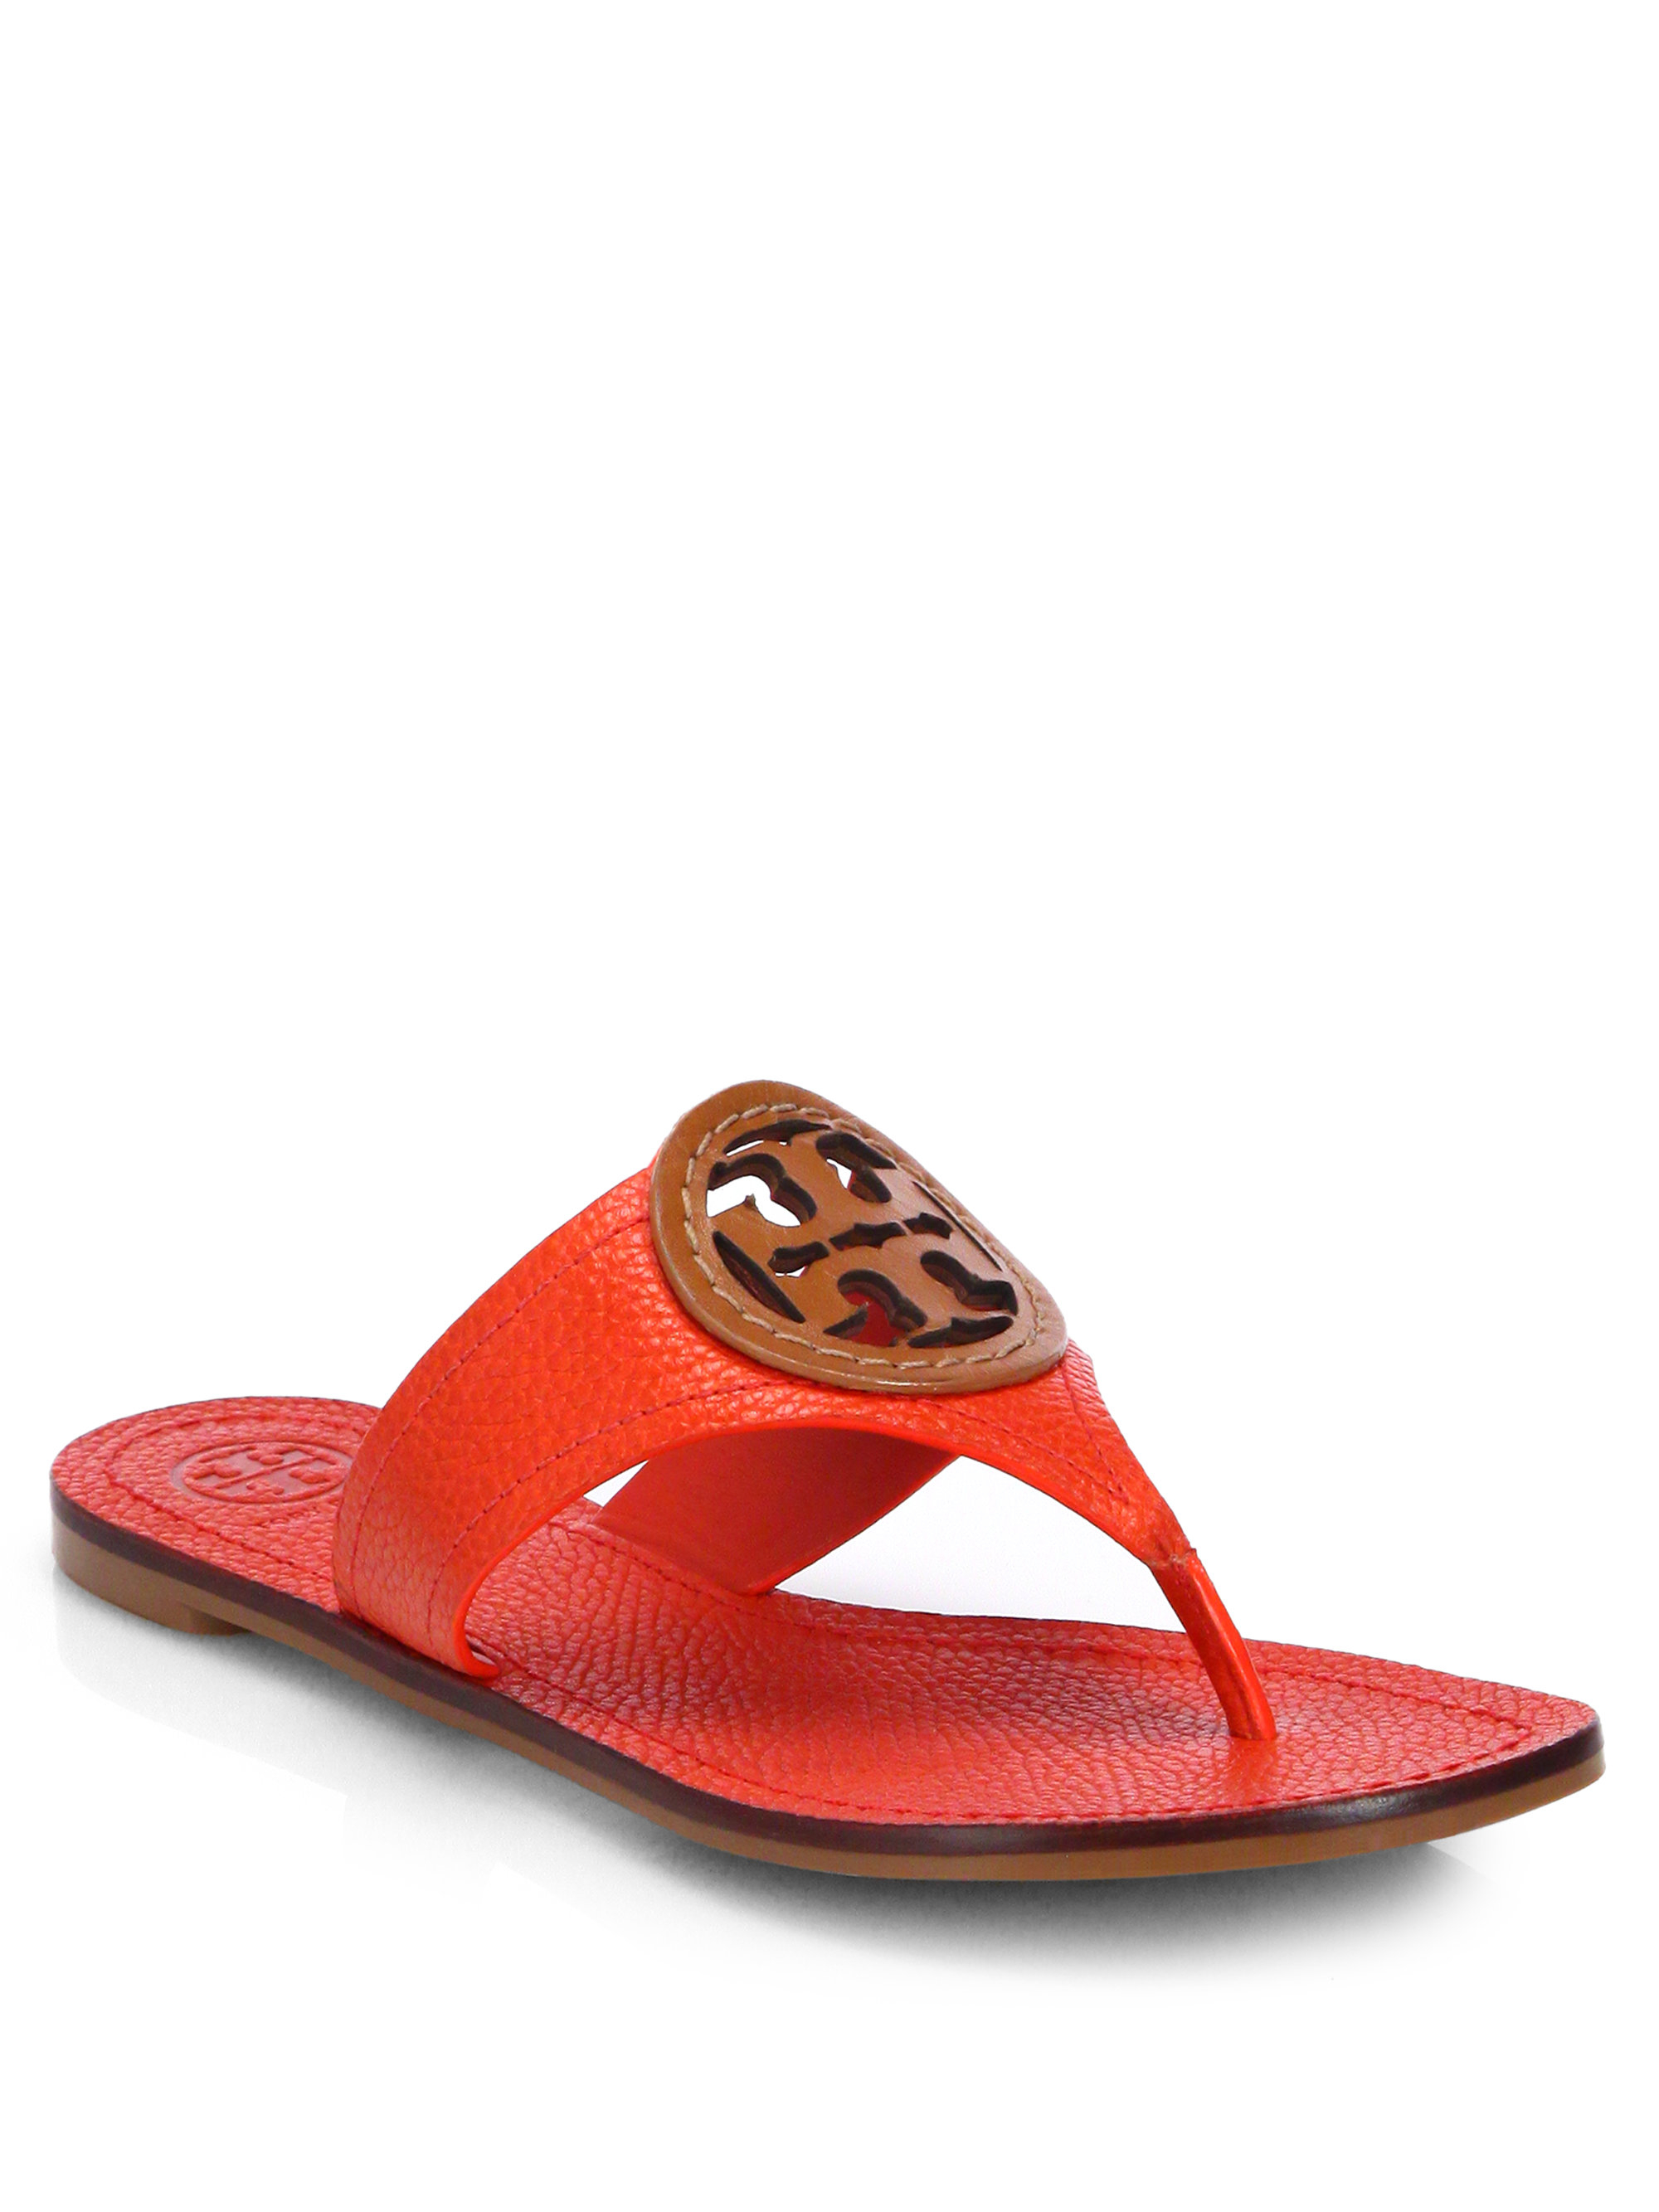 Lyst Tory Burch Louisa Leather Thong Sandals In Red